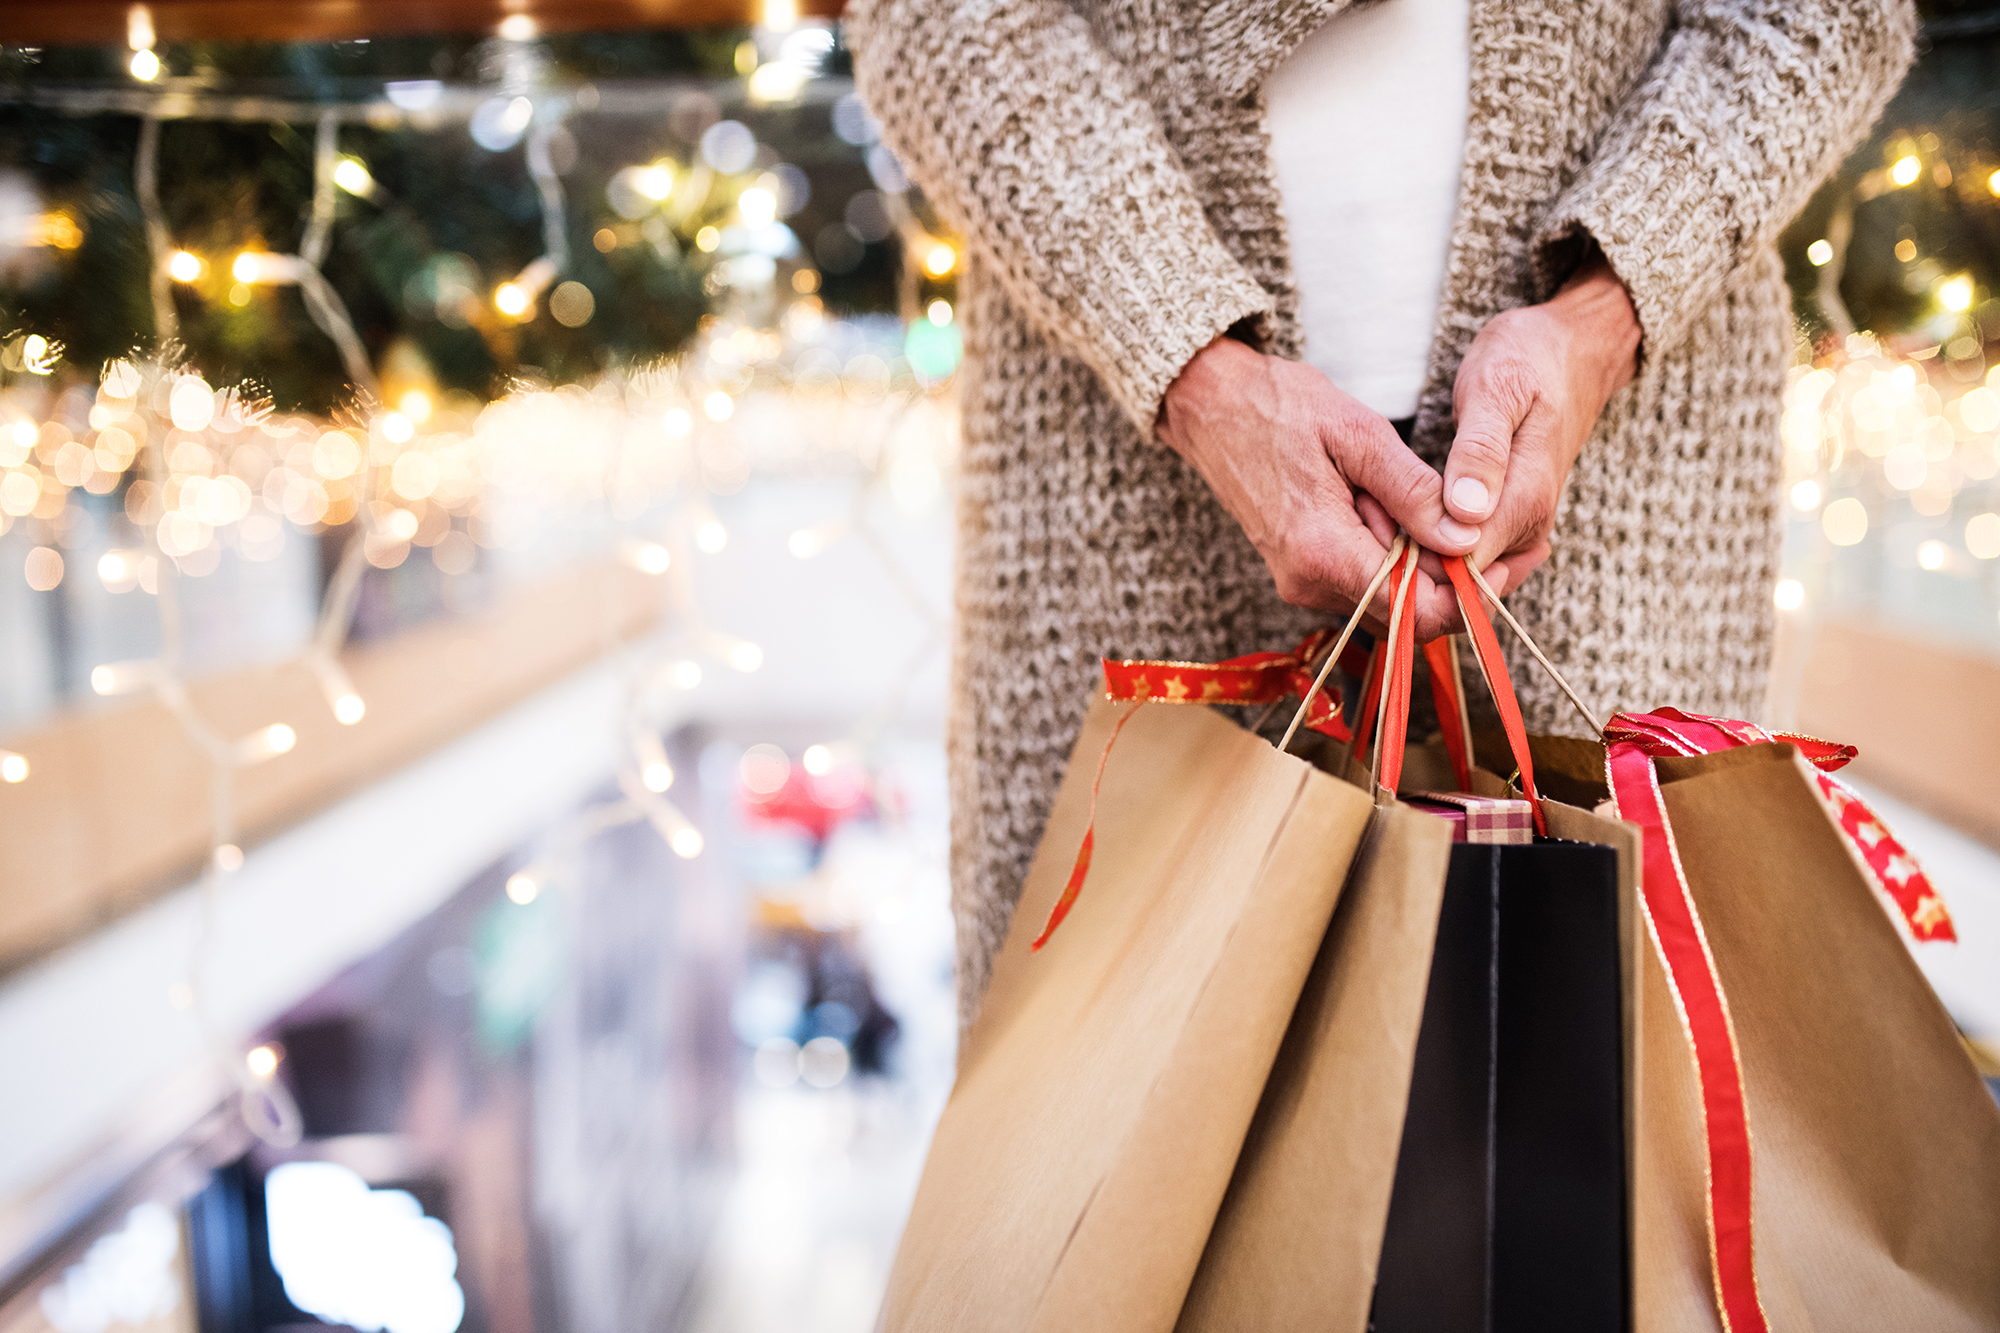 It's time to start Christmas shopping, and here's why